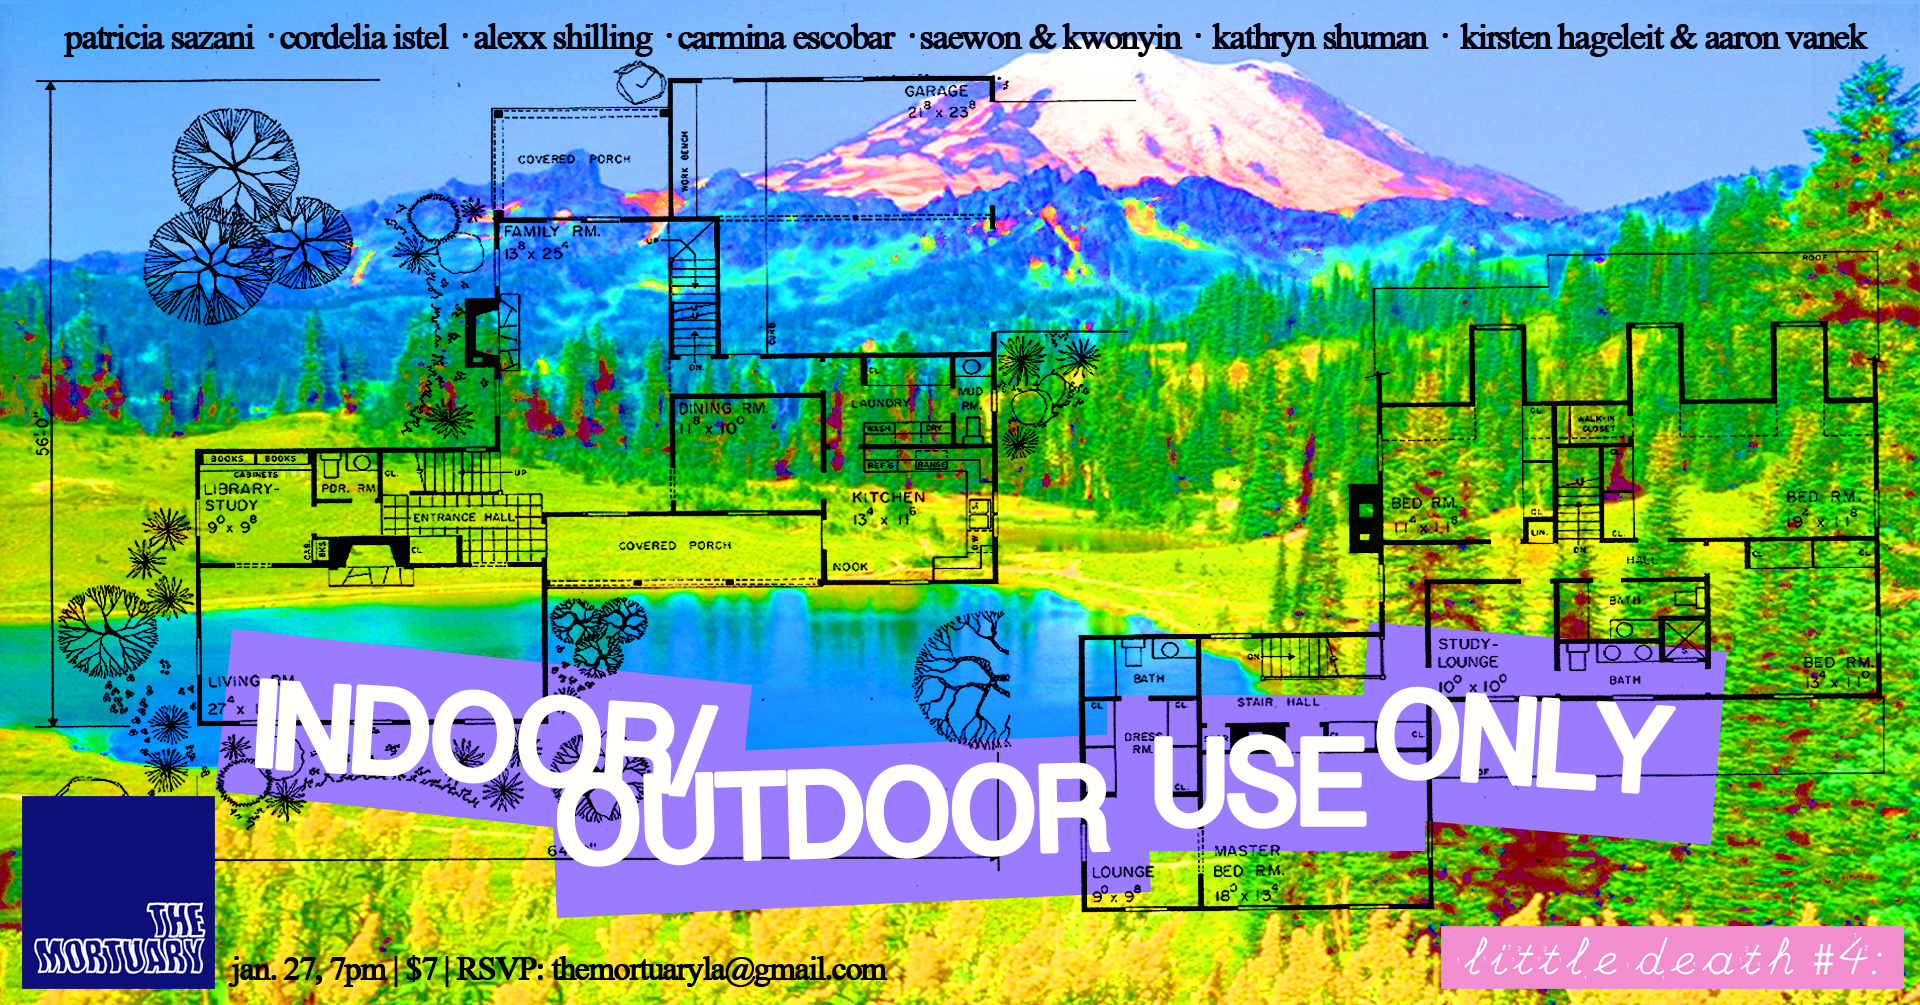 indooroutdoorfbook3.jpg